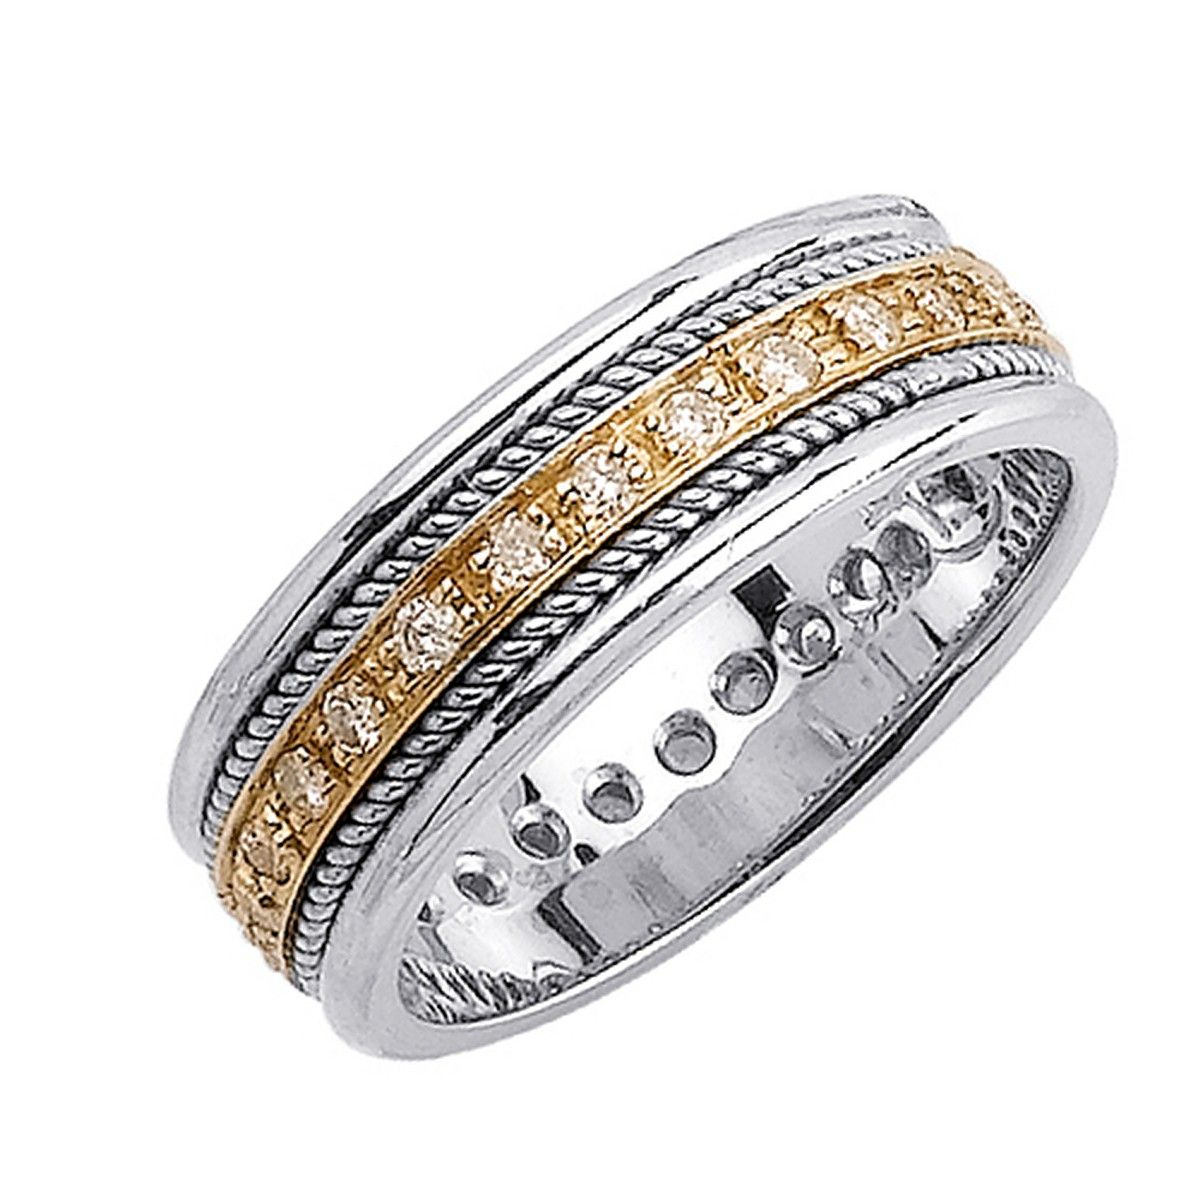 Wedding Bands For Men How To Choose Them The Ku